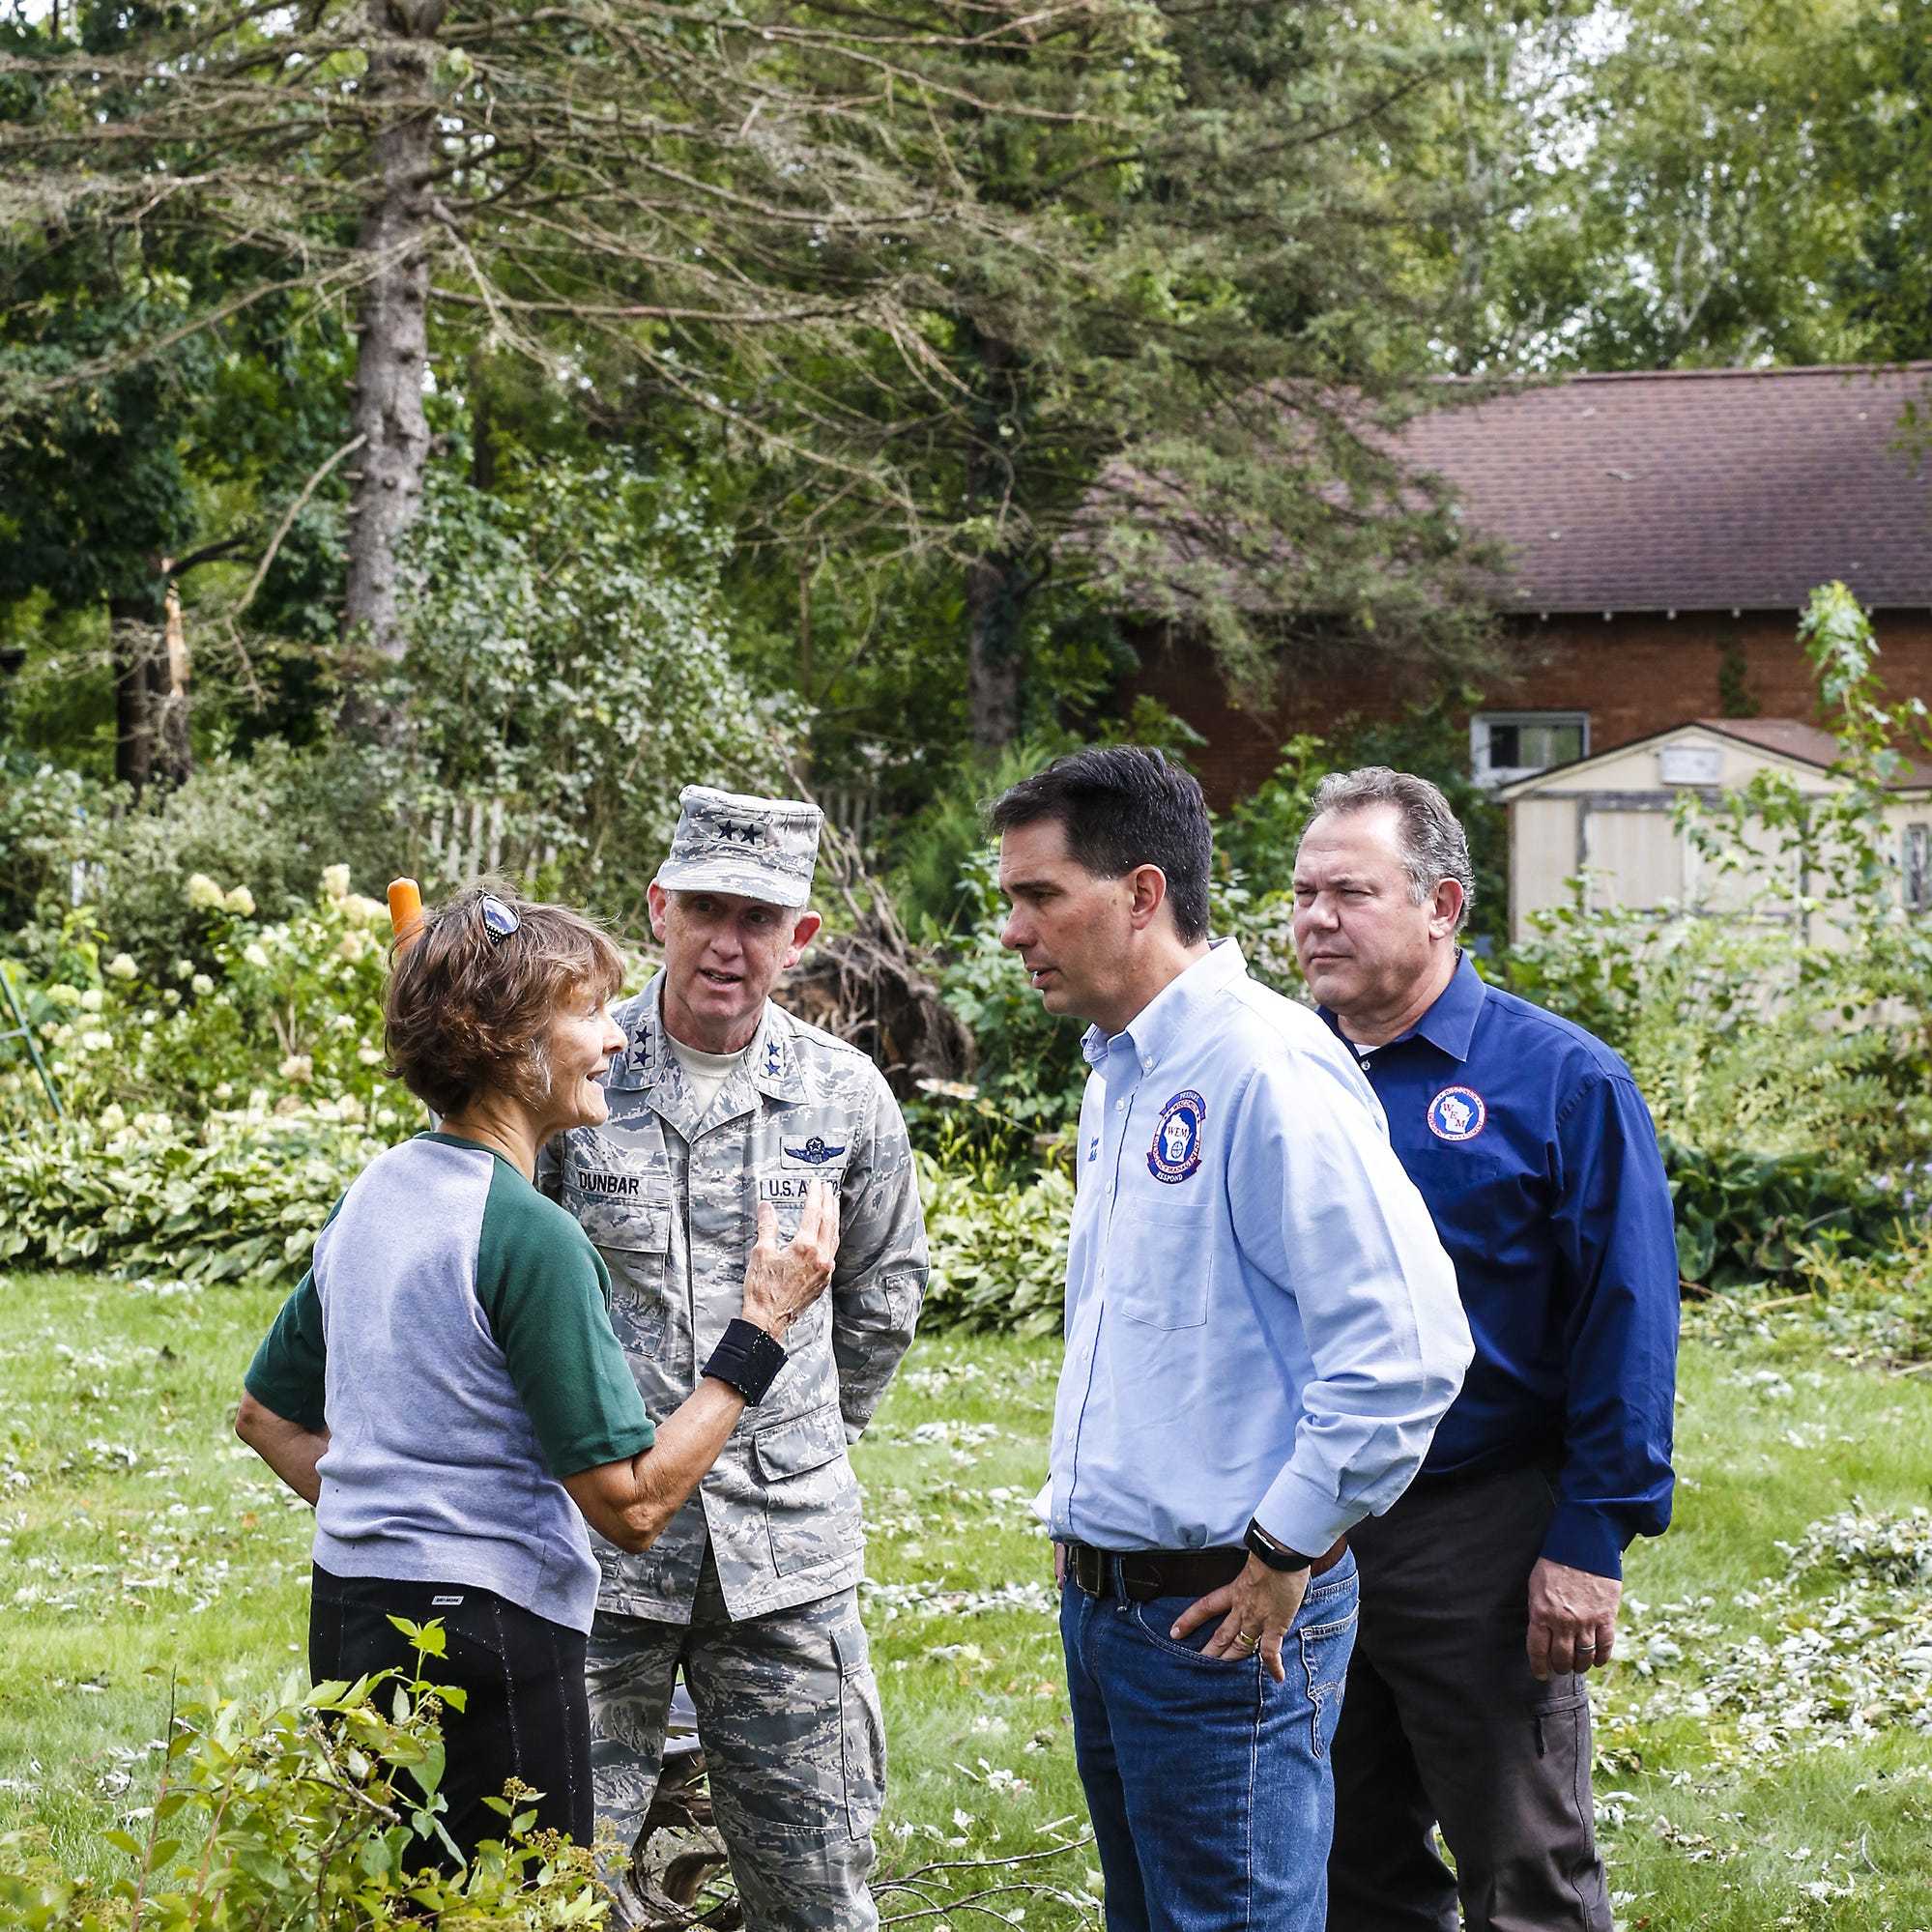 Jo Ann Gouin talks about damage her house sustained during the tornadoes with, from left, Donald Dunbar of the Wisconsin National Guard, Wisconsin Governor Scott Walker and Brian Satura of Wisconsin Emergency Management Thursday in the backyard of her Highland Street house in Brownsville.